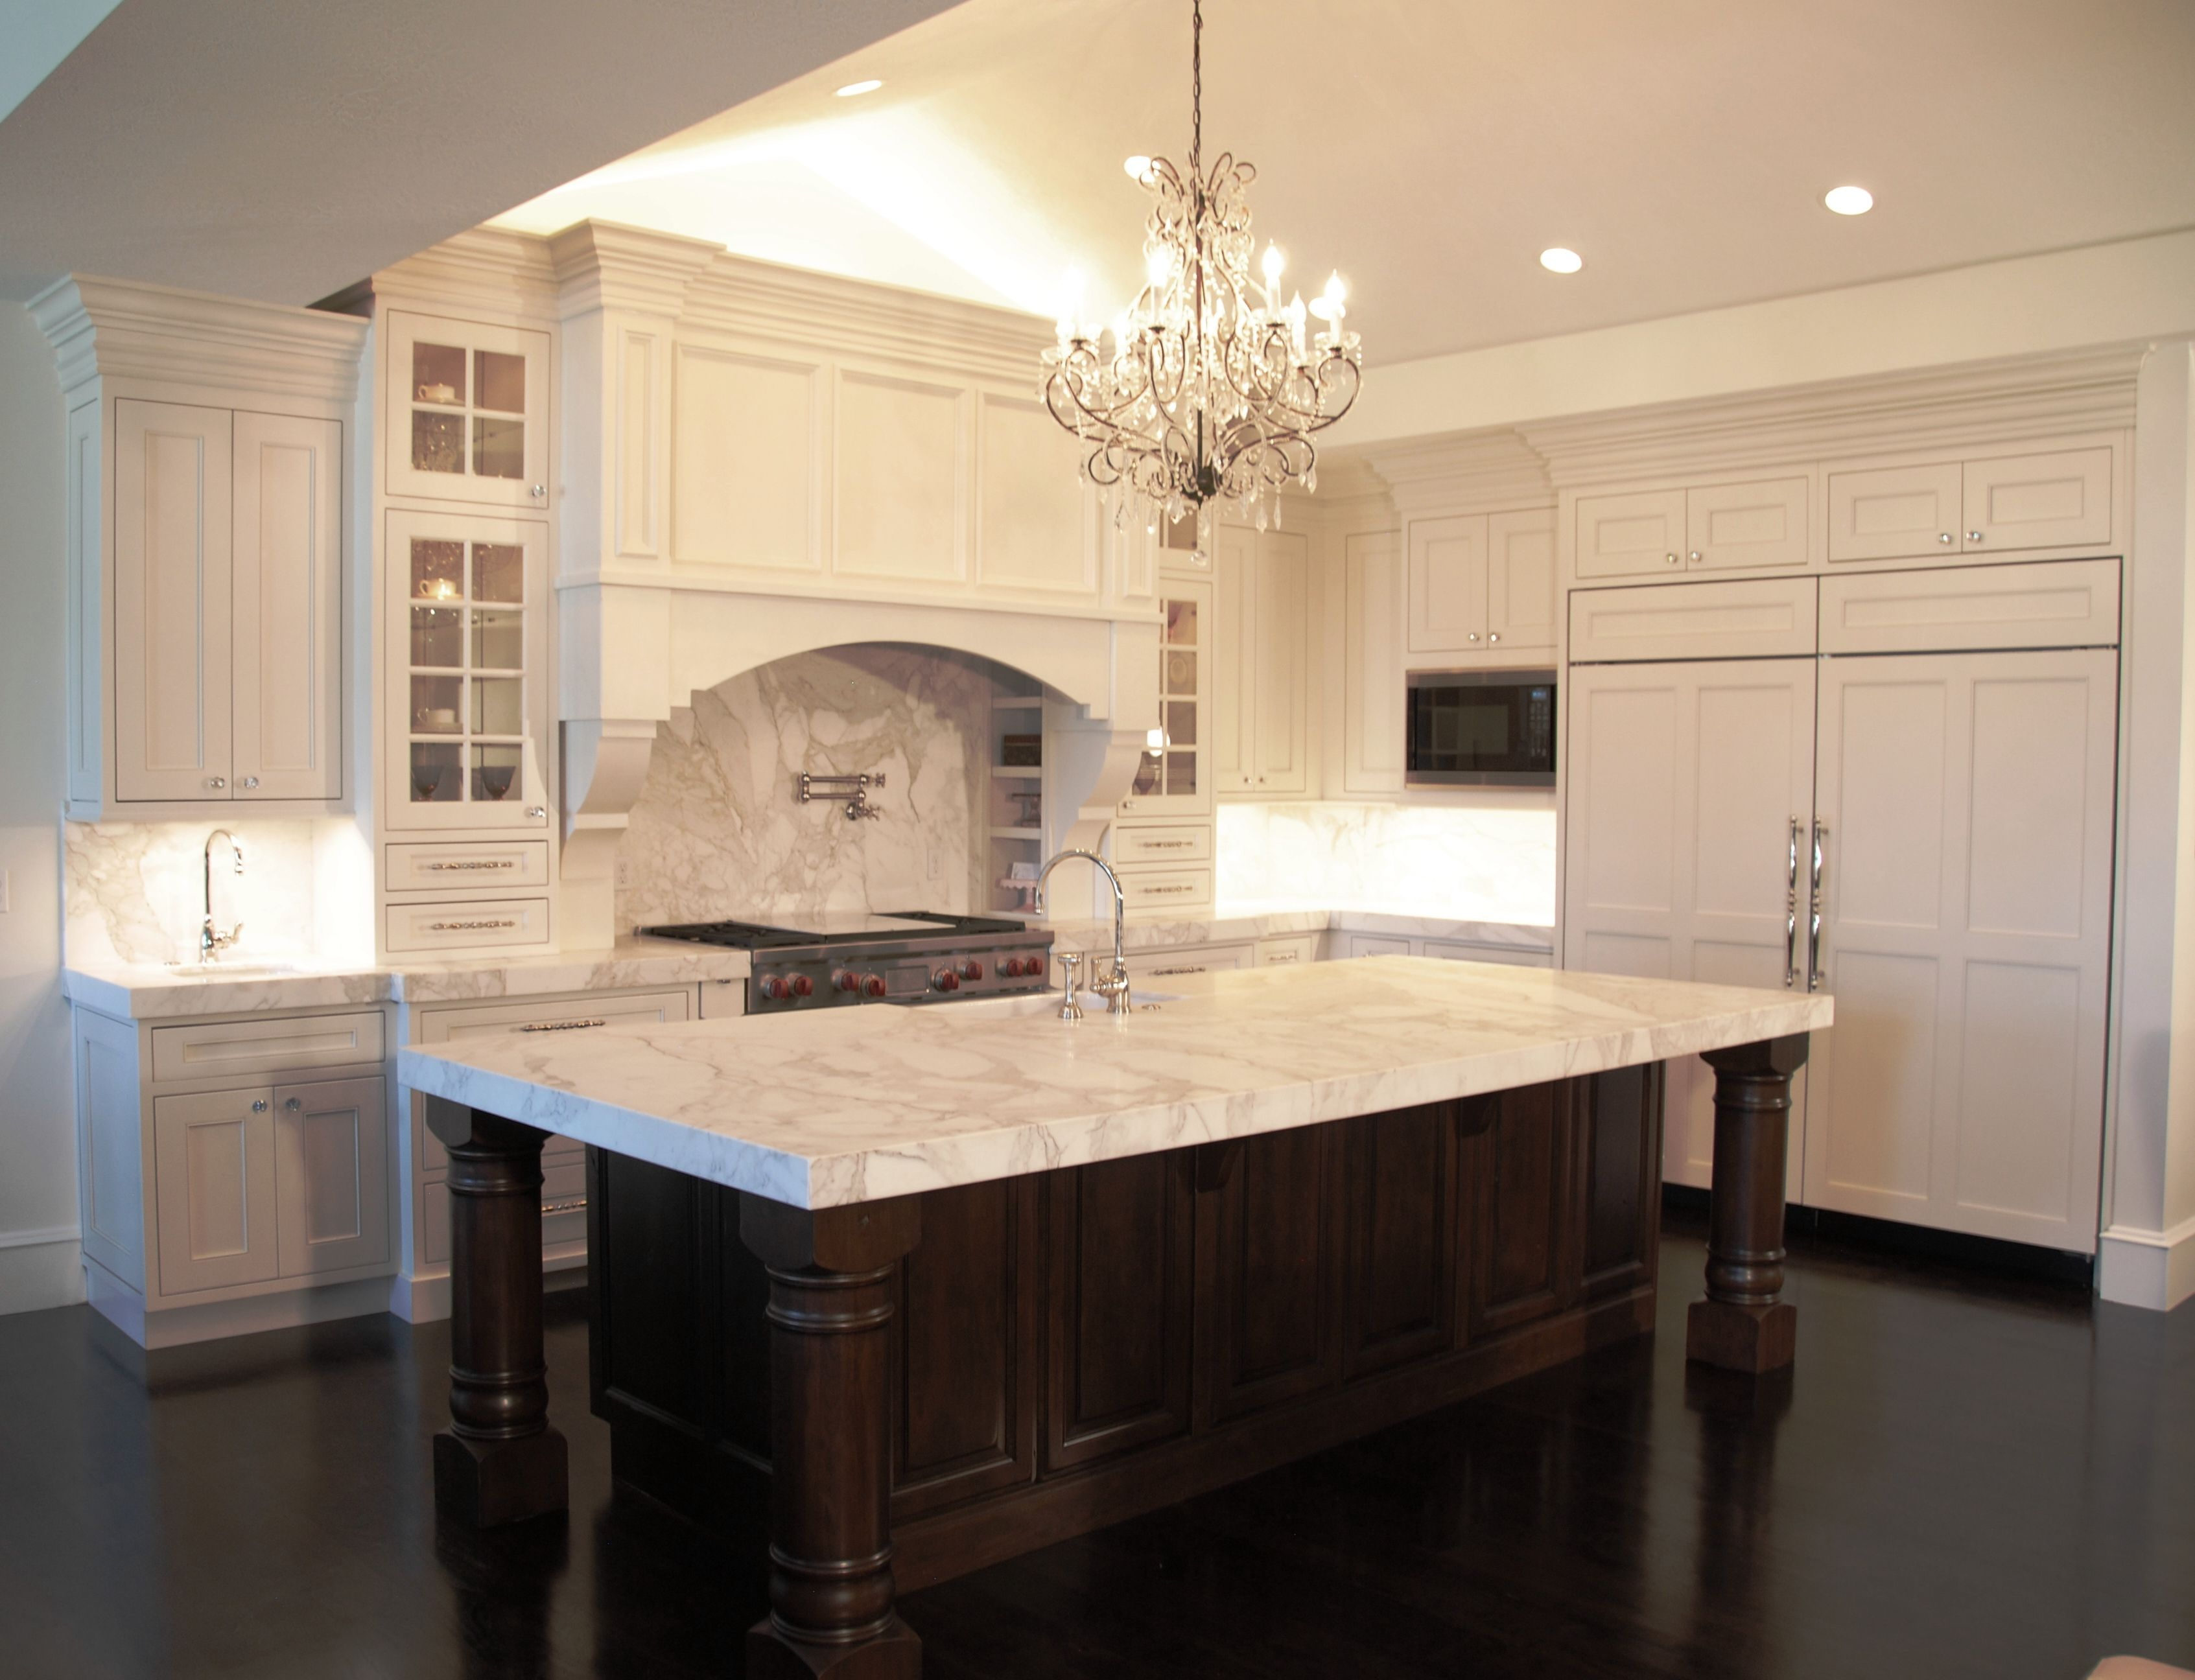 Kitchen Idea, Marvelous White Kitchen Design With Elegant Chandelier, Brown  Wooden Kitchen Island With White Granite Countertops And Cool Wh.